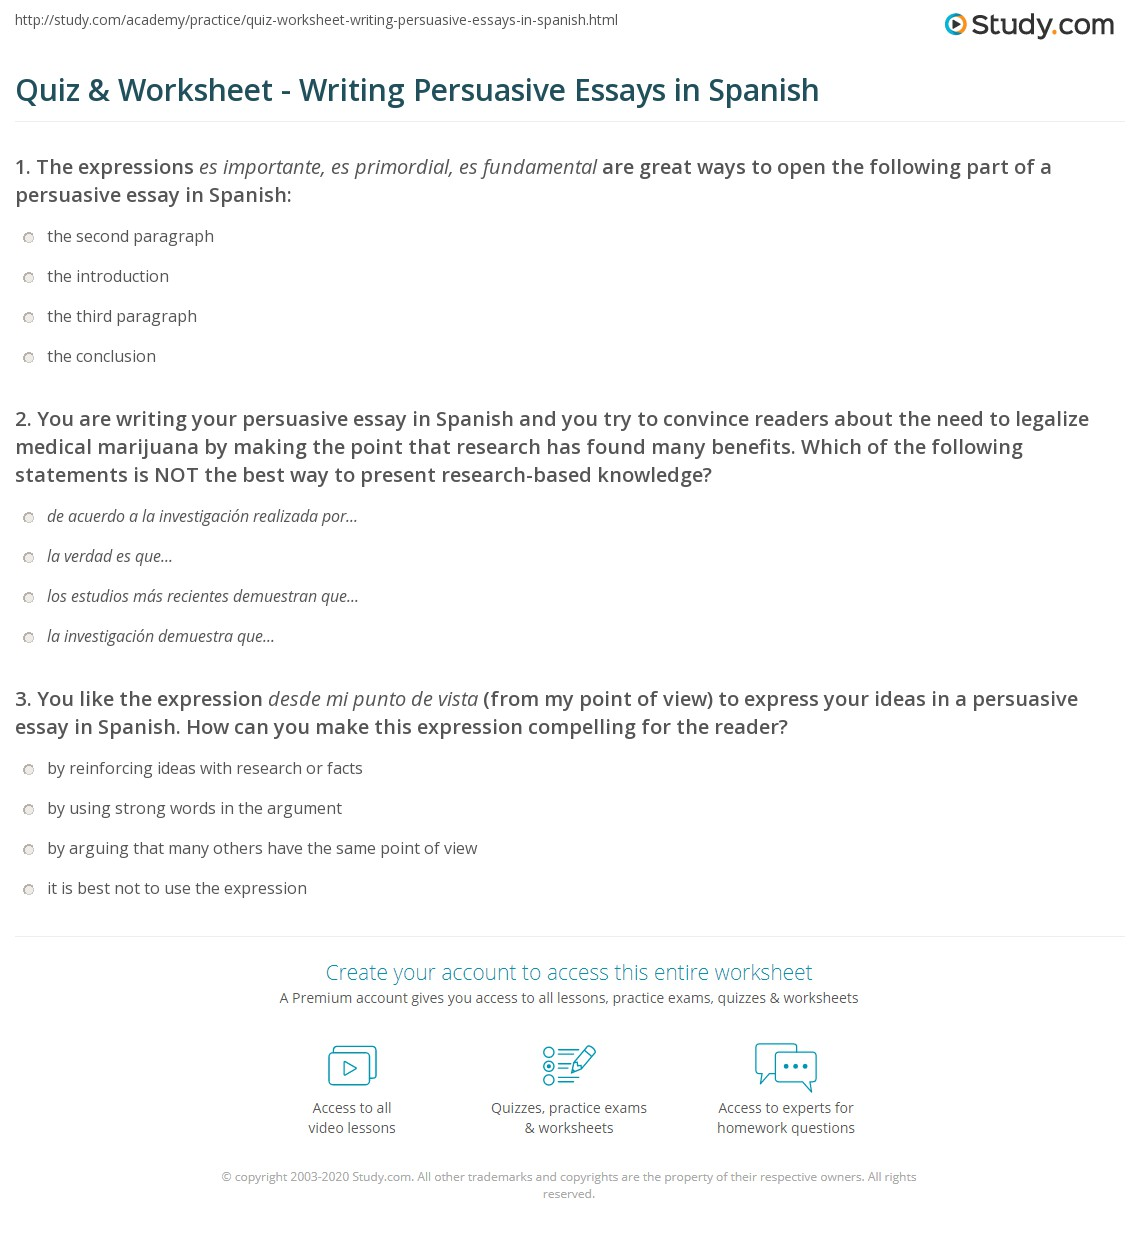 English Short Essays You Are Writing Your Persuasive Essay In Spanish And You Try To Convince  Readers About The Need To Legalize Medical Marijuana By Making The Point  That  Sample English Essay also Old English Essay Quiz  Worksheet  Writing Persuasive Essays In Spanish  Studycom Health Essay Writing